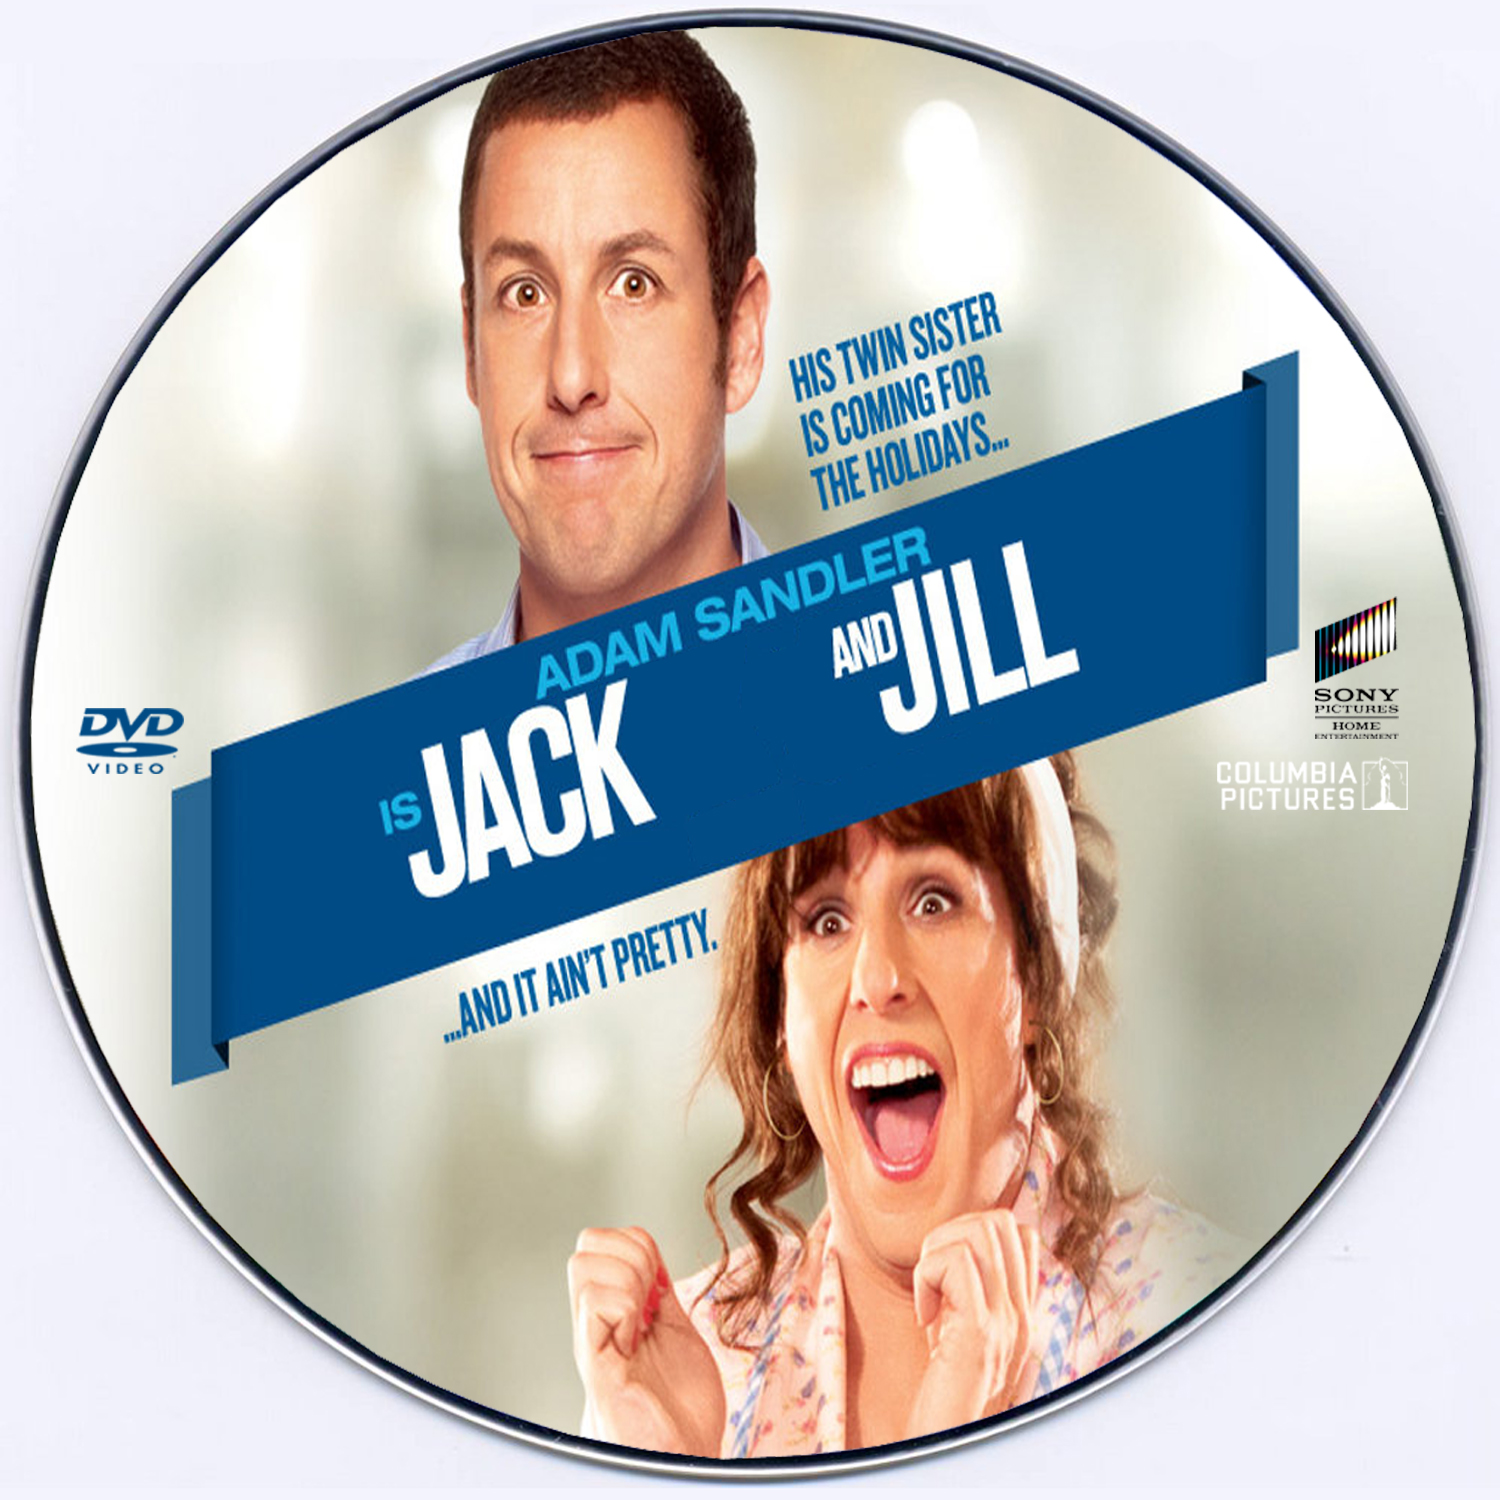 Covers Box Sk Jack And Jill 2011 High Quality Dvd